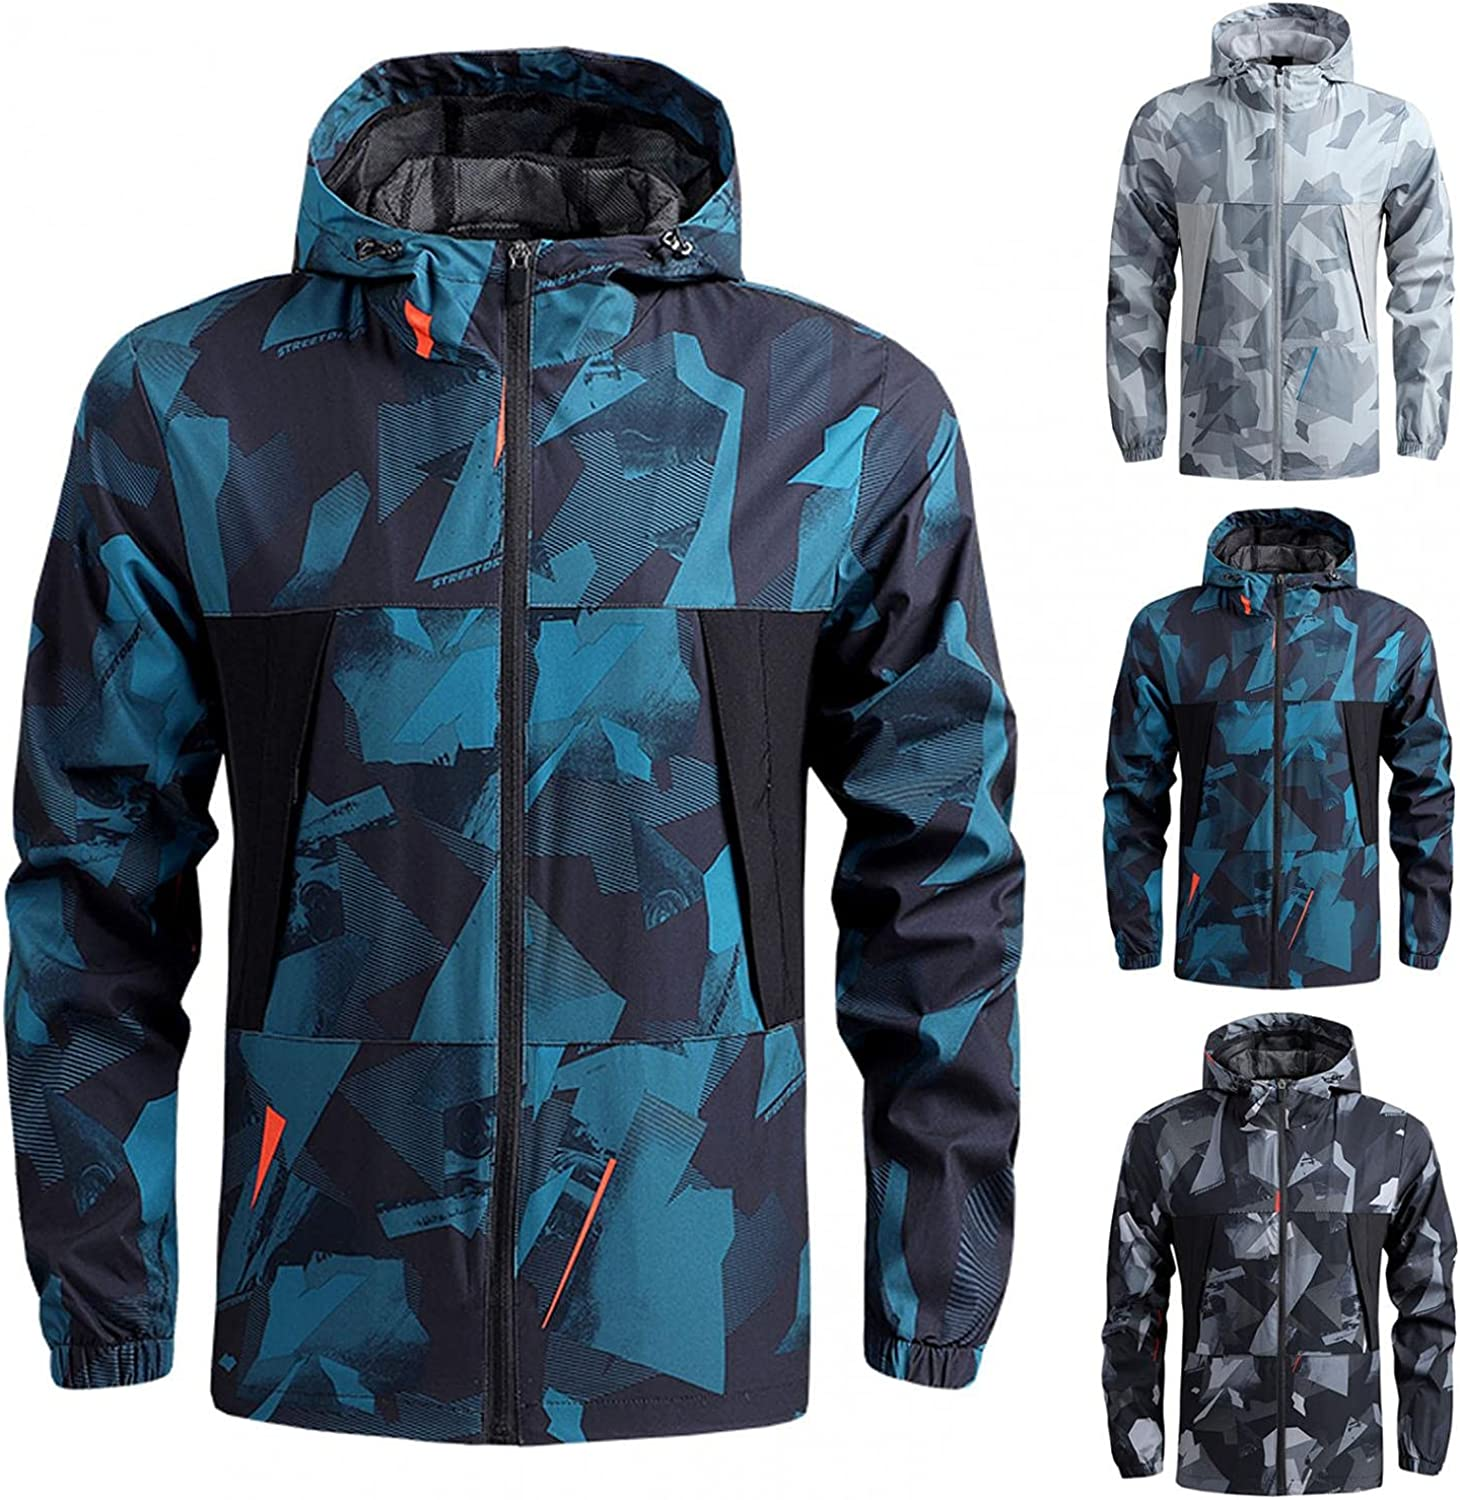 JSPOYOU Mens Jackets Lightweight Hoodie Graphic Print Waterproof Thin Coats Big & Tall Outdoor Breathable Sports Coat